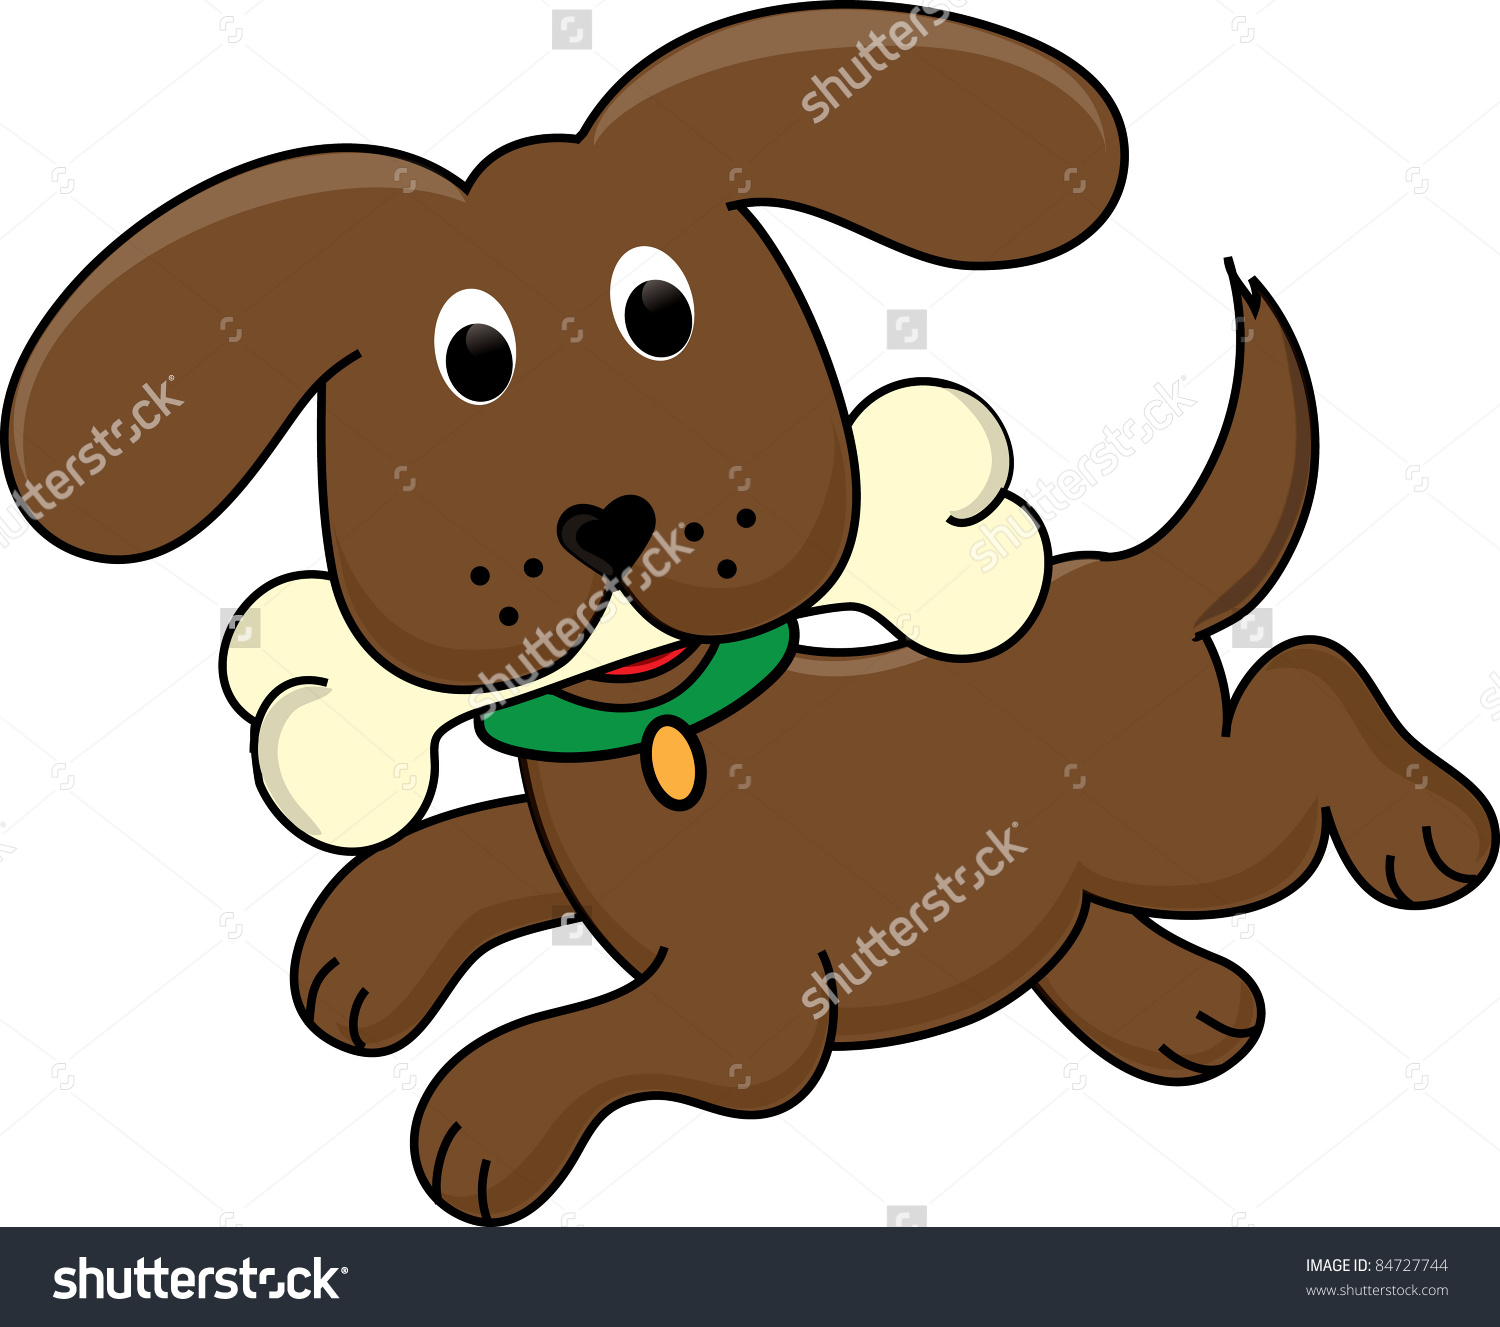 Clipart small brown dog black and white Clip Art Illustration Cute Little Dog Stock Illustration 84727744 ... black and white